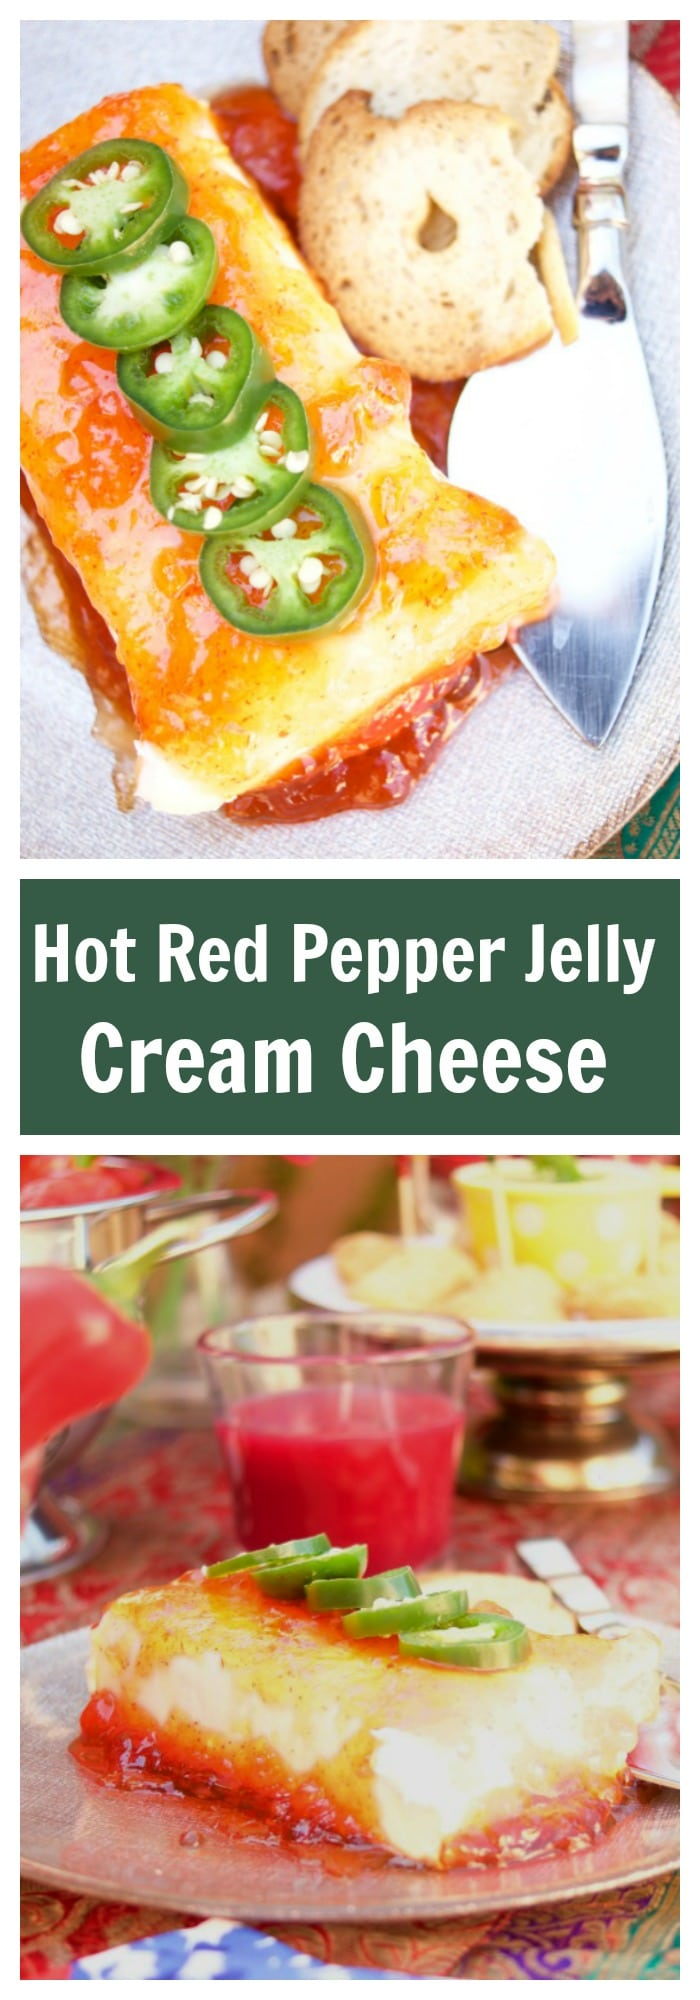 This Cream Cheese with Hot Red Pepper Jelly is easy to make and delicious. The perfect sweet and spicy appetizer to serve at any party of celebration.